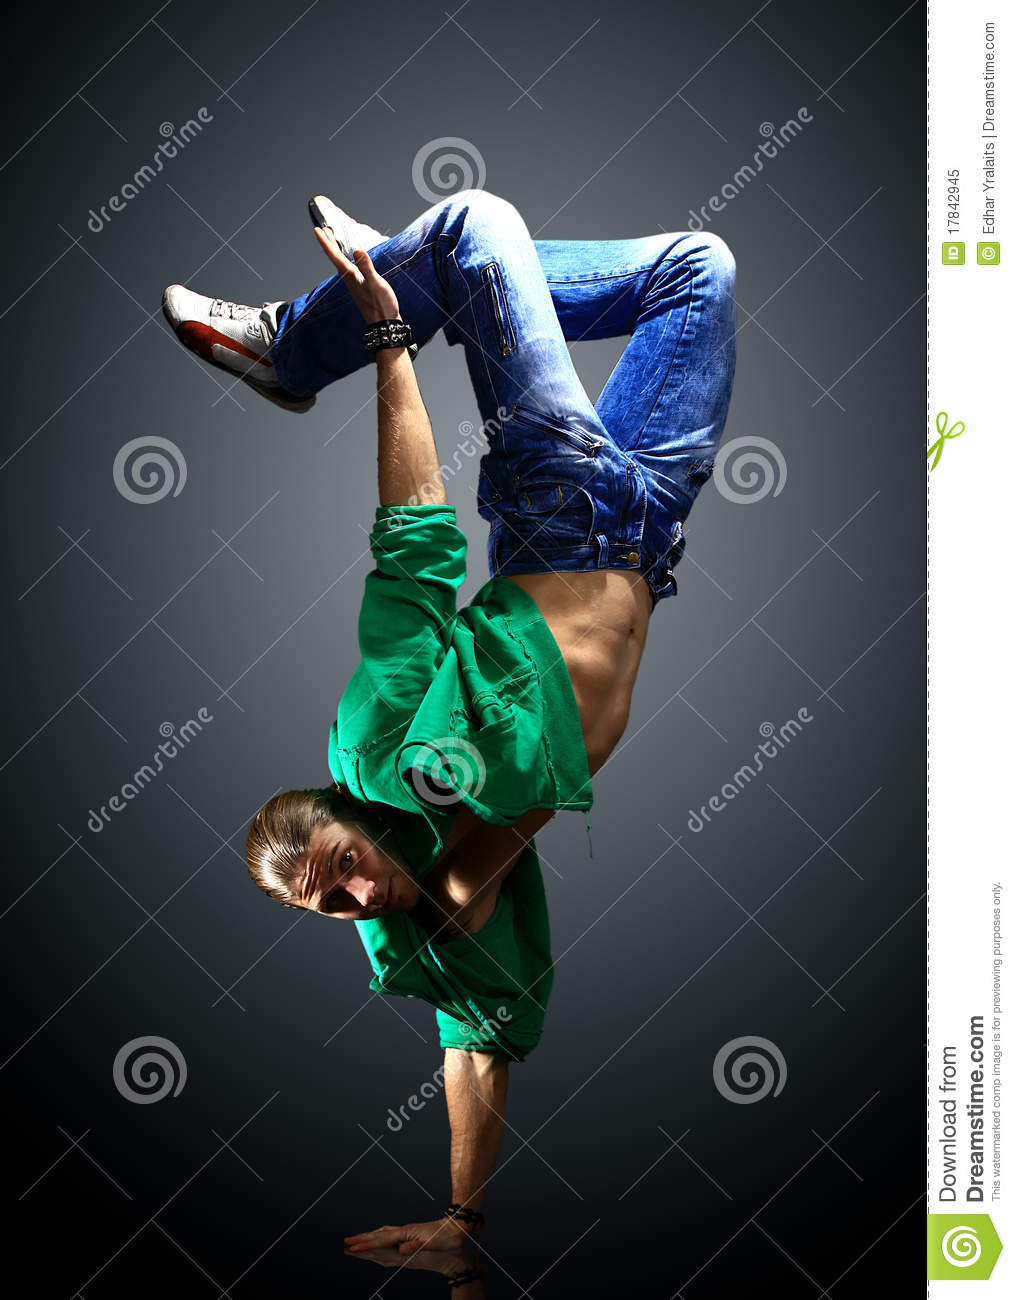 Stylish And Cool Breakdance Stock Image